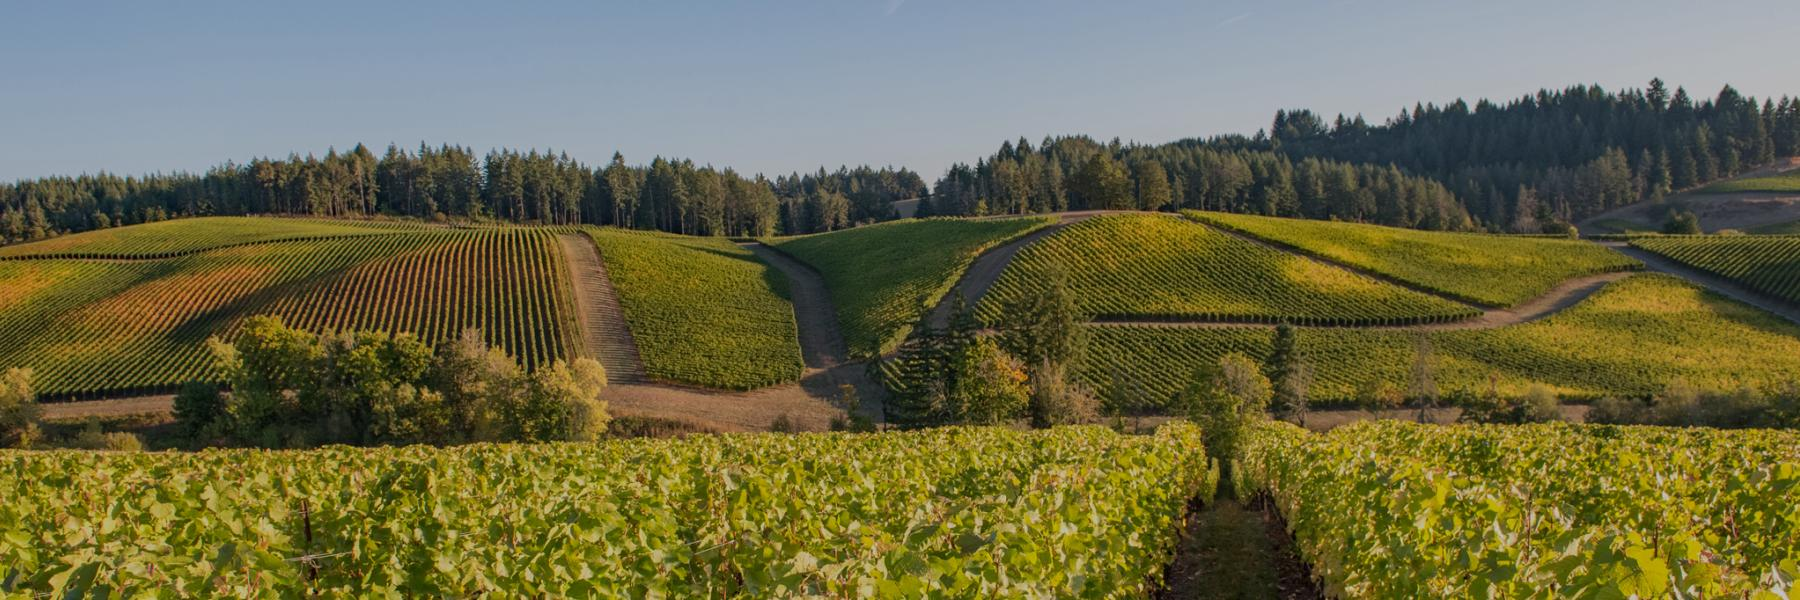 Gran Moraine vineyard, Willamette Valley, Oregon